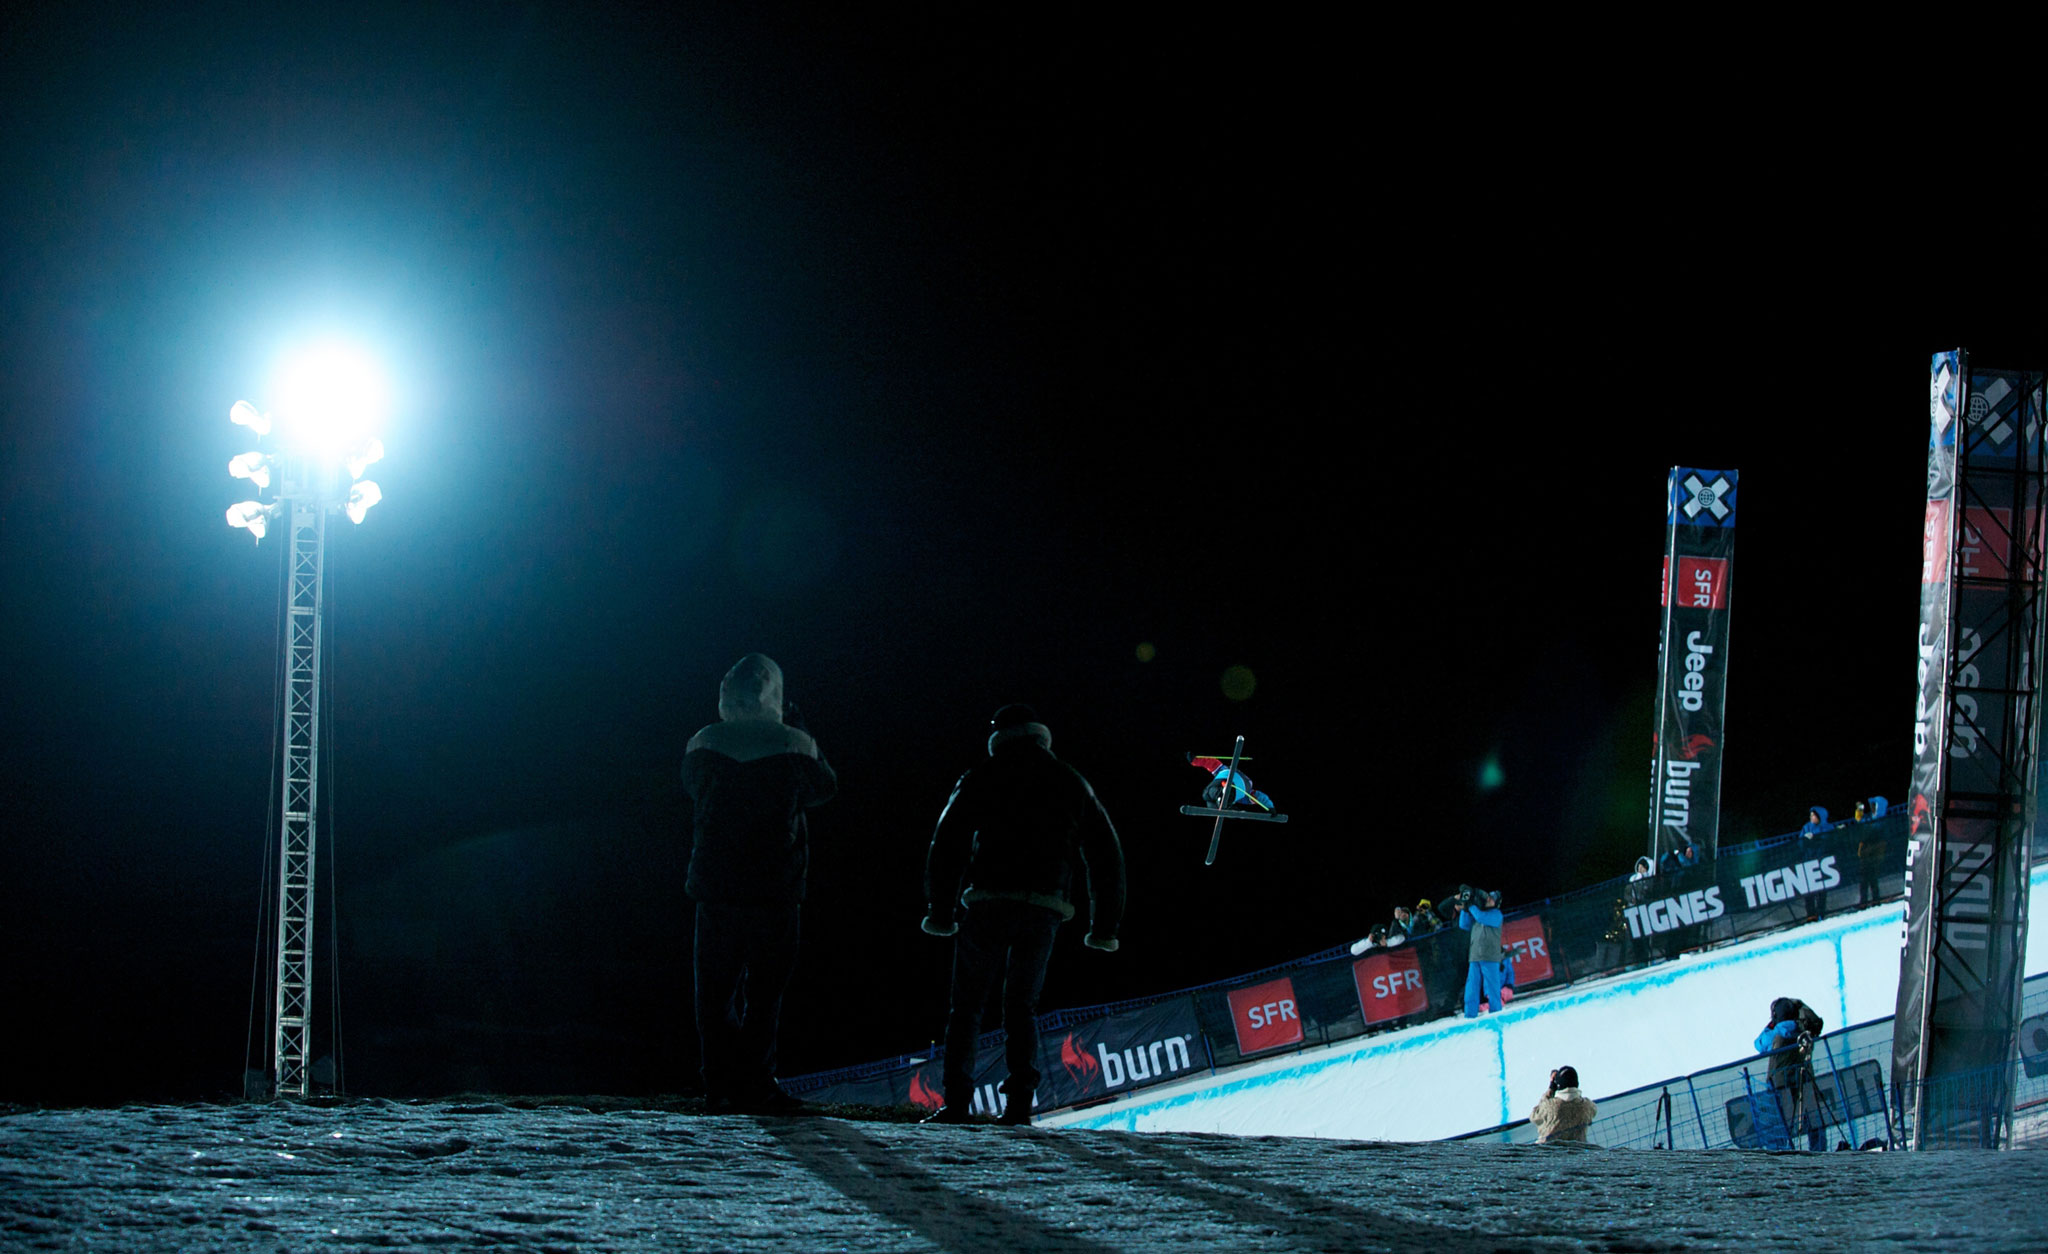 When the X Games comes to Tignes this month, there will be three major countries vying for gold in Men's Ski SuperPipe: Canada, the U.S. and France.